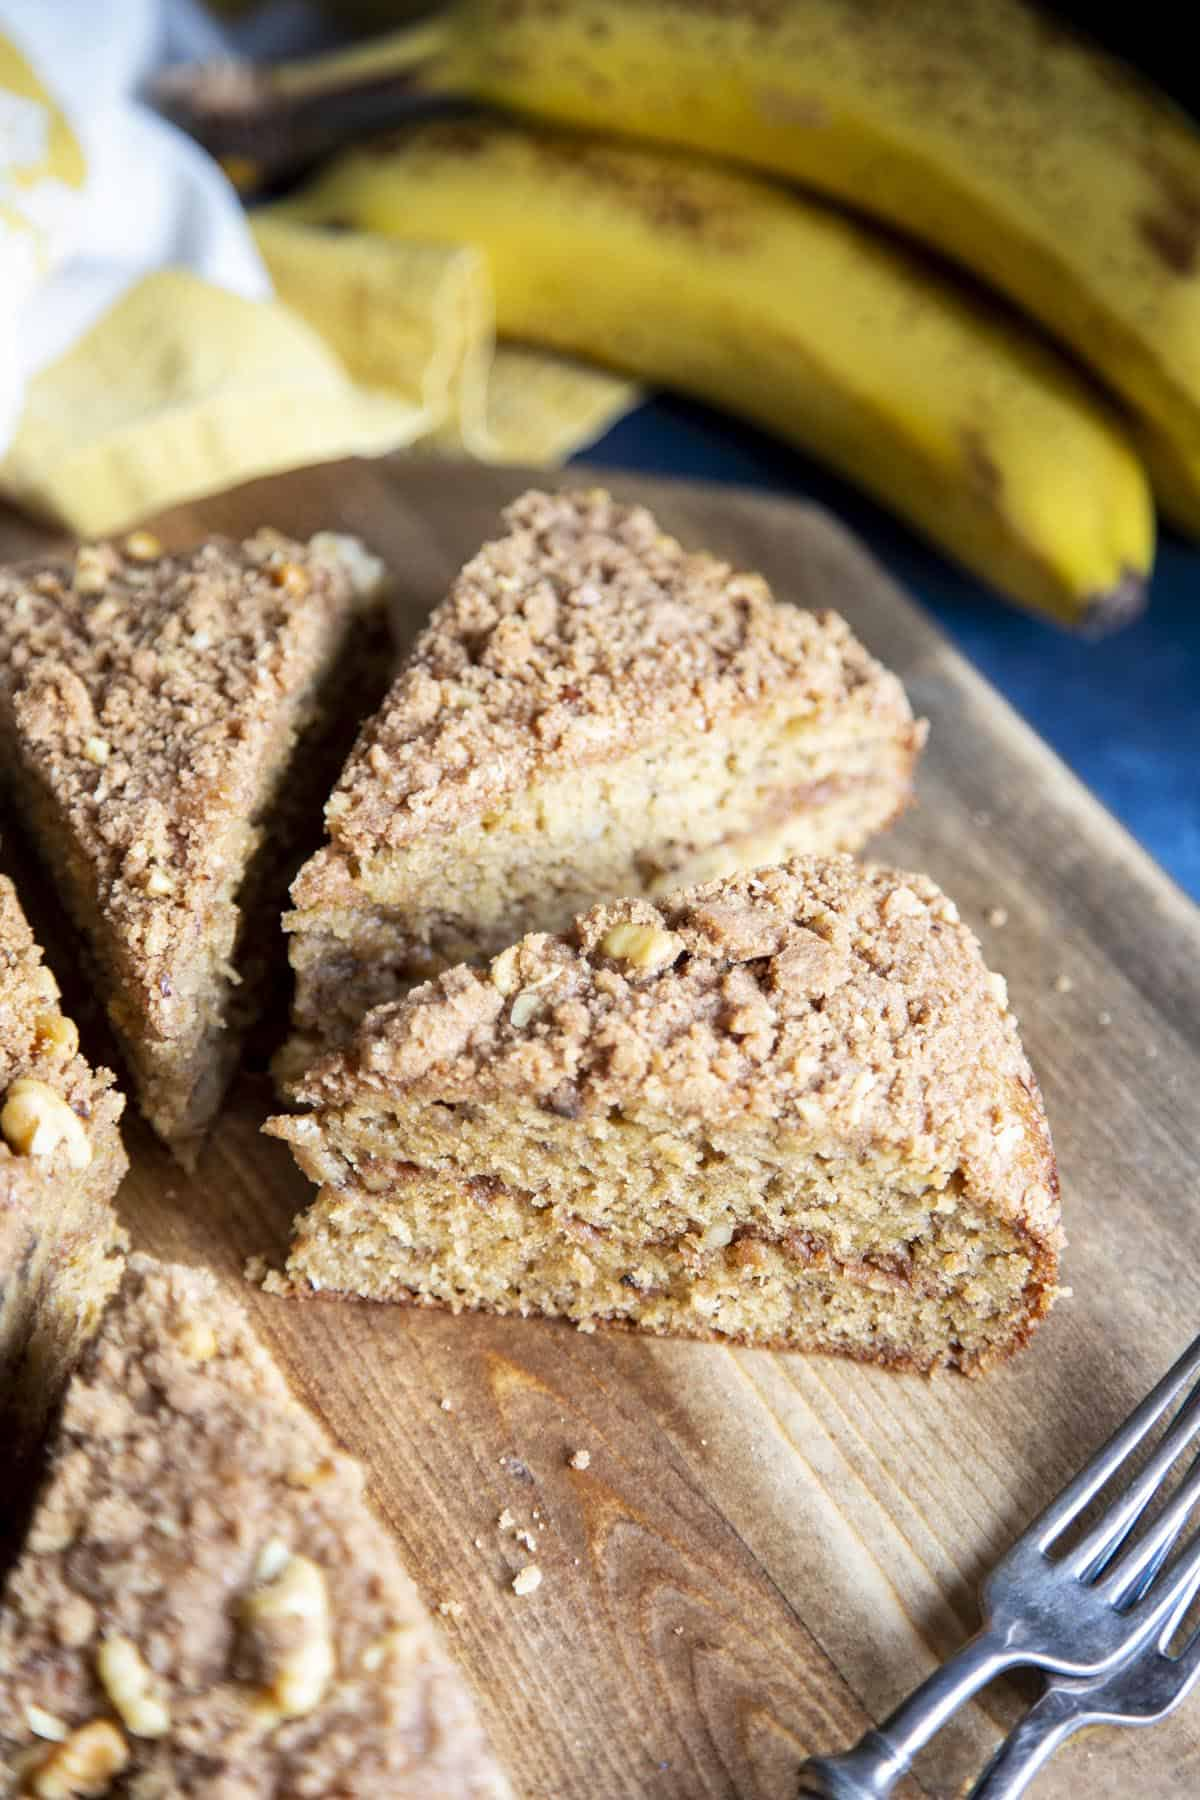 Slices of banana coffee cake on a wooden board.